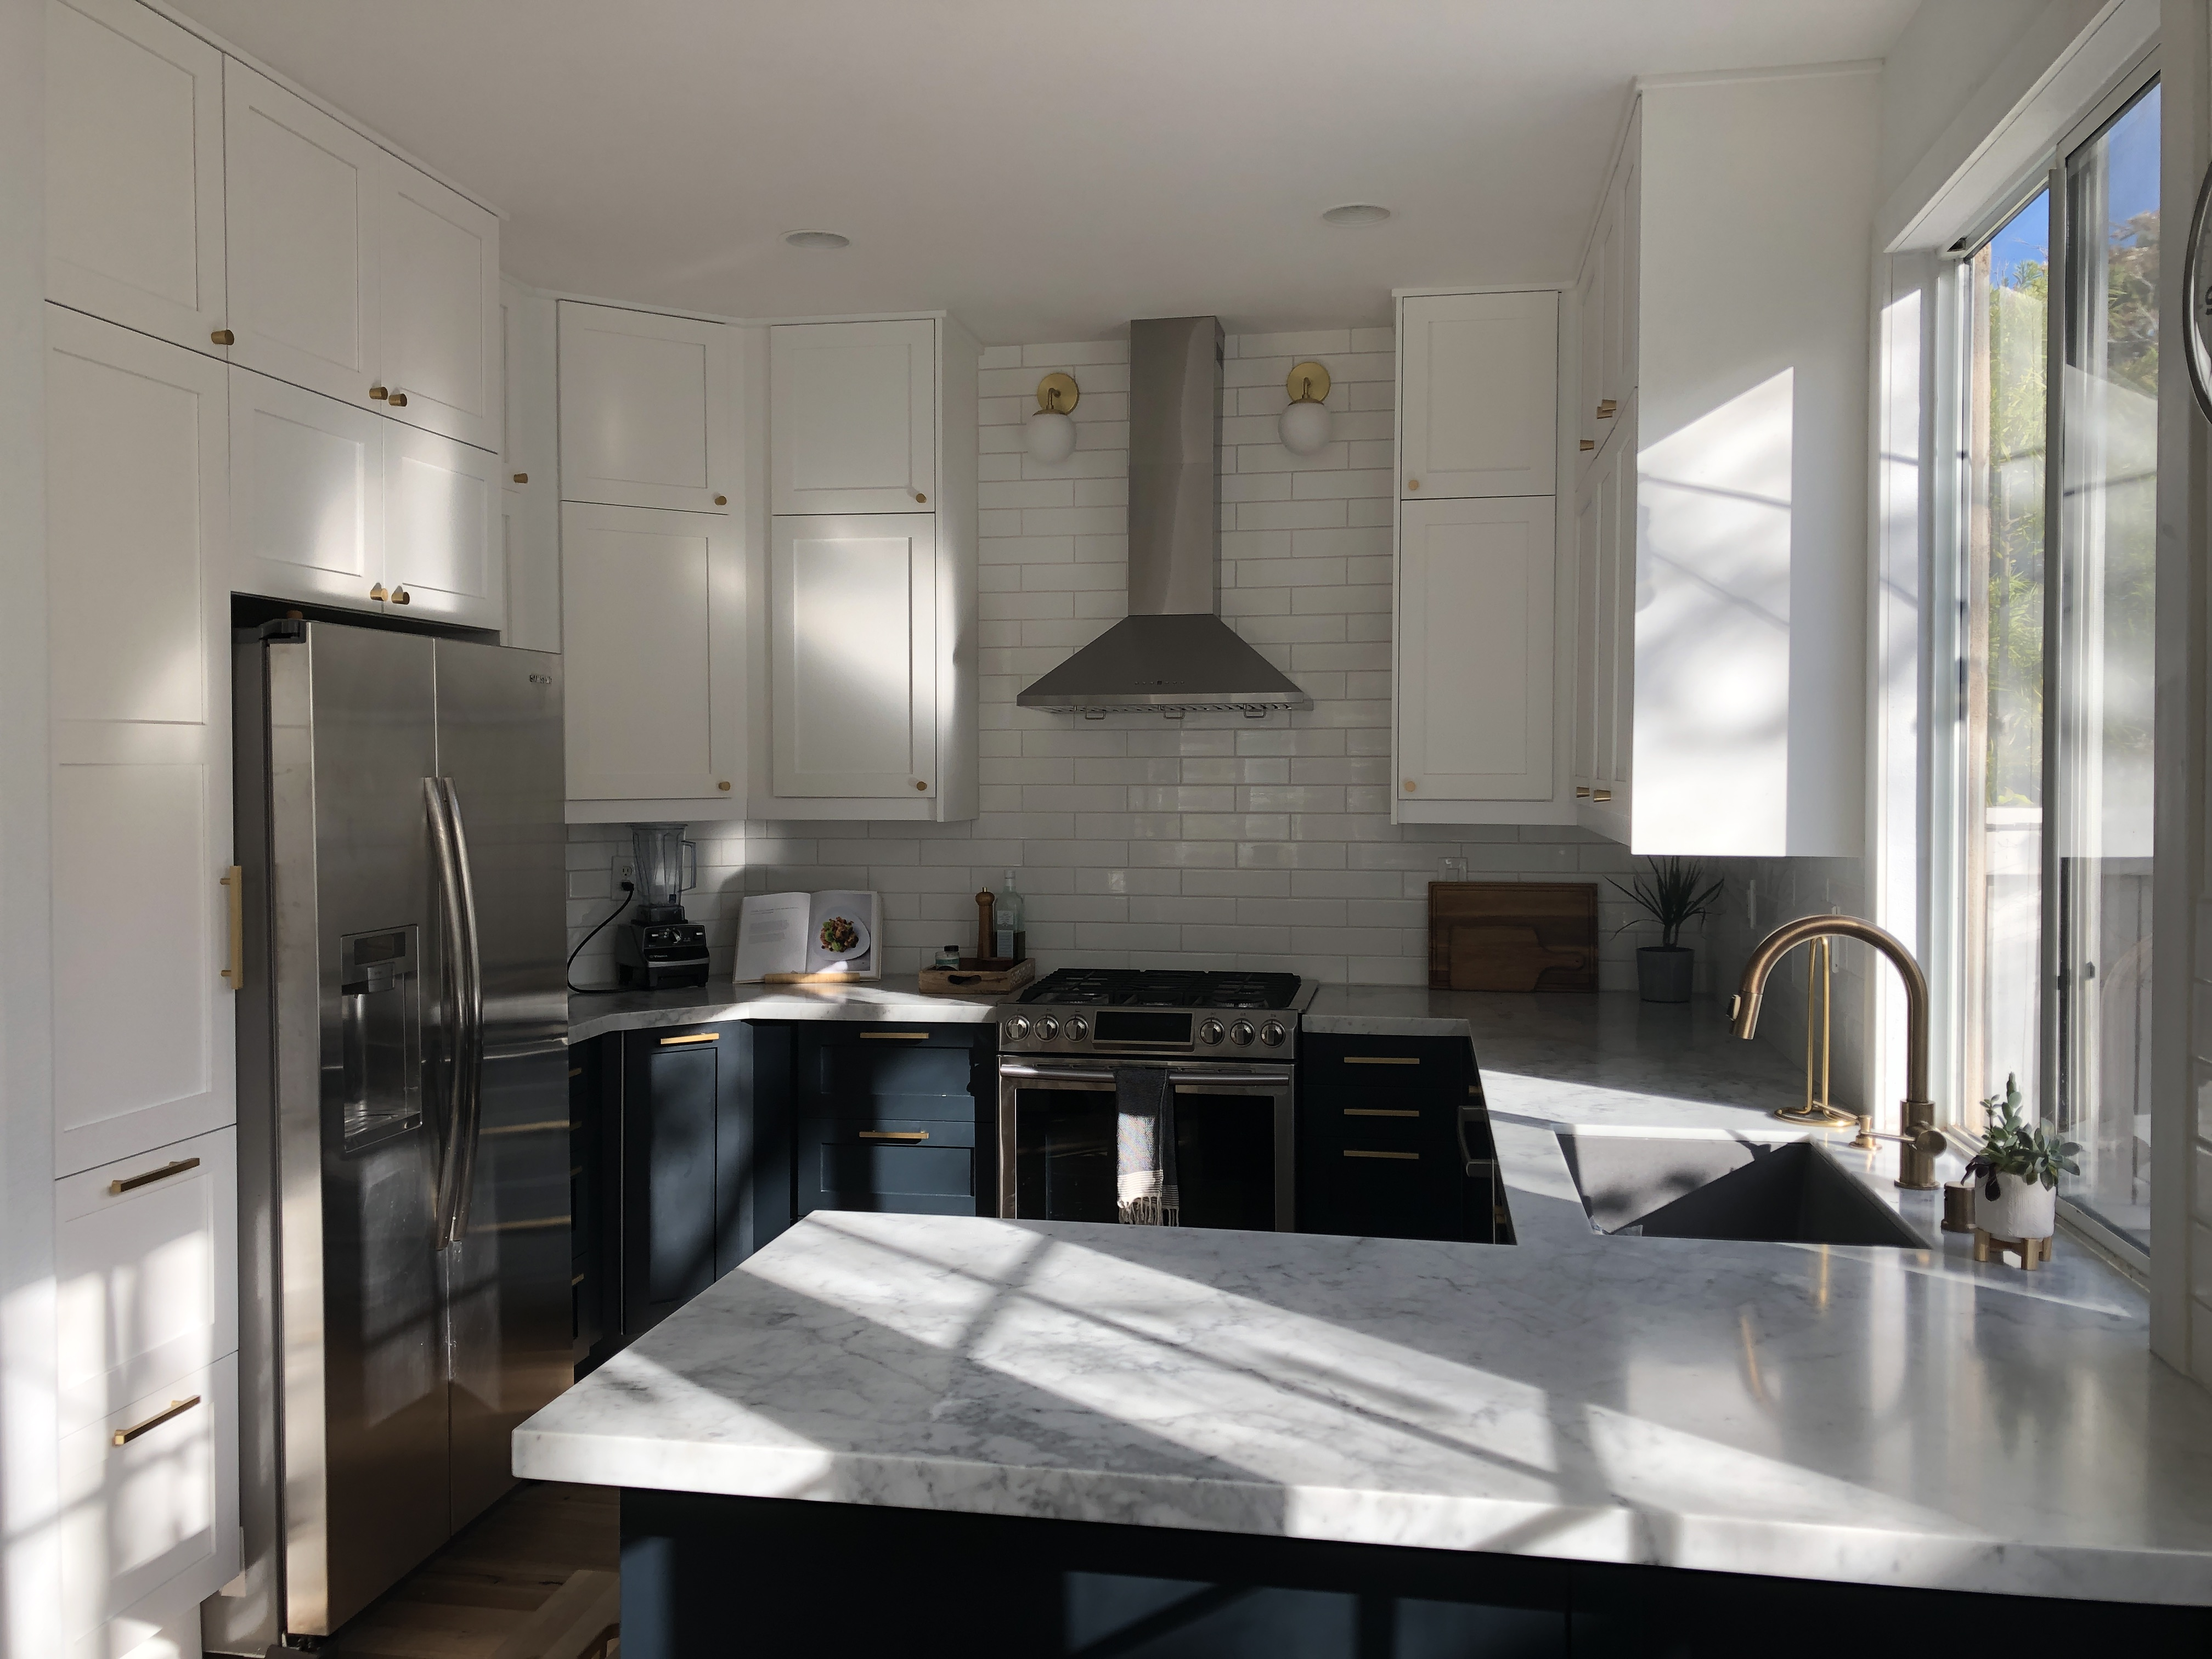 Lessons Learned From An Ikea And Semihandmade Kitchen Renovation